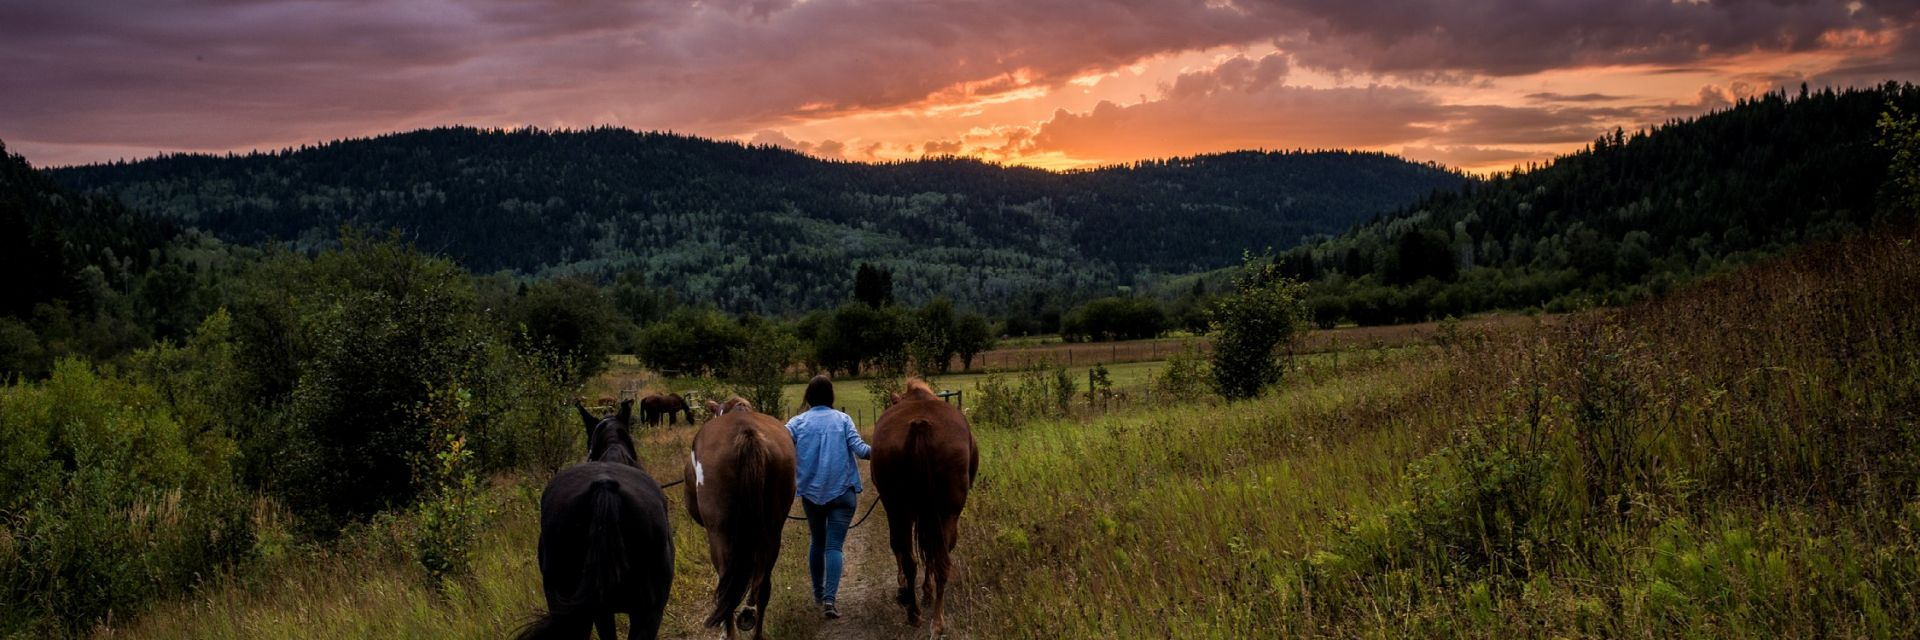 A woman leads horses on a dirt path in a valley at sunset.